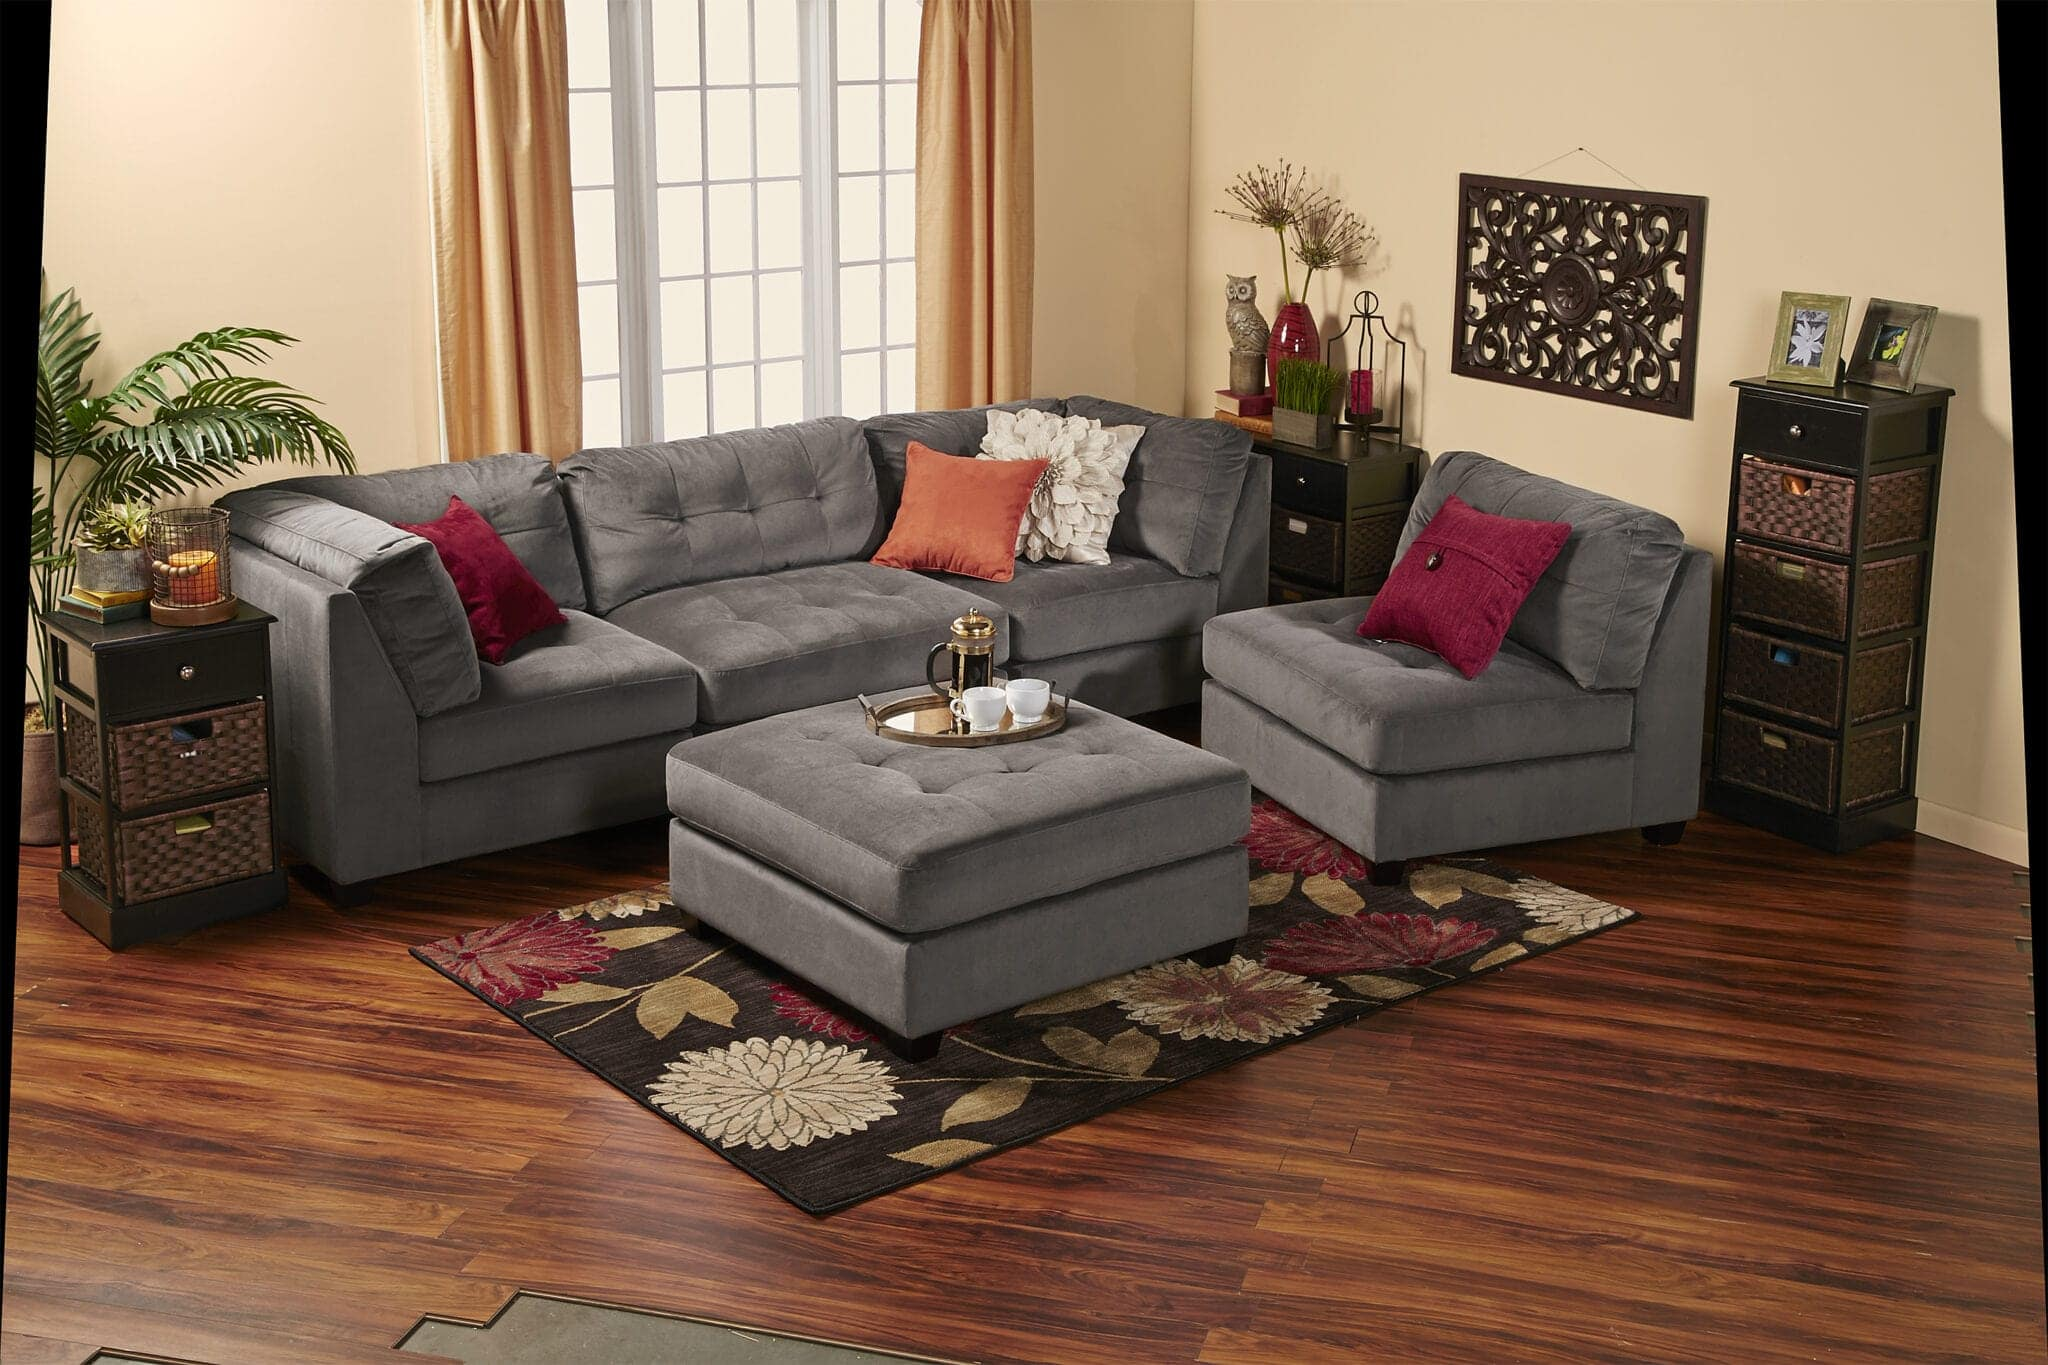 Fred Meyer Truckload Furniture Event - Couches Under $300, 5